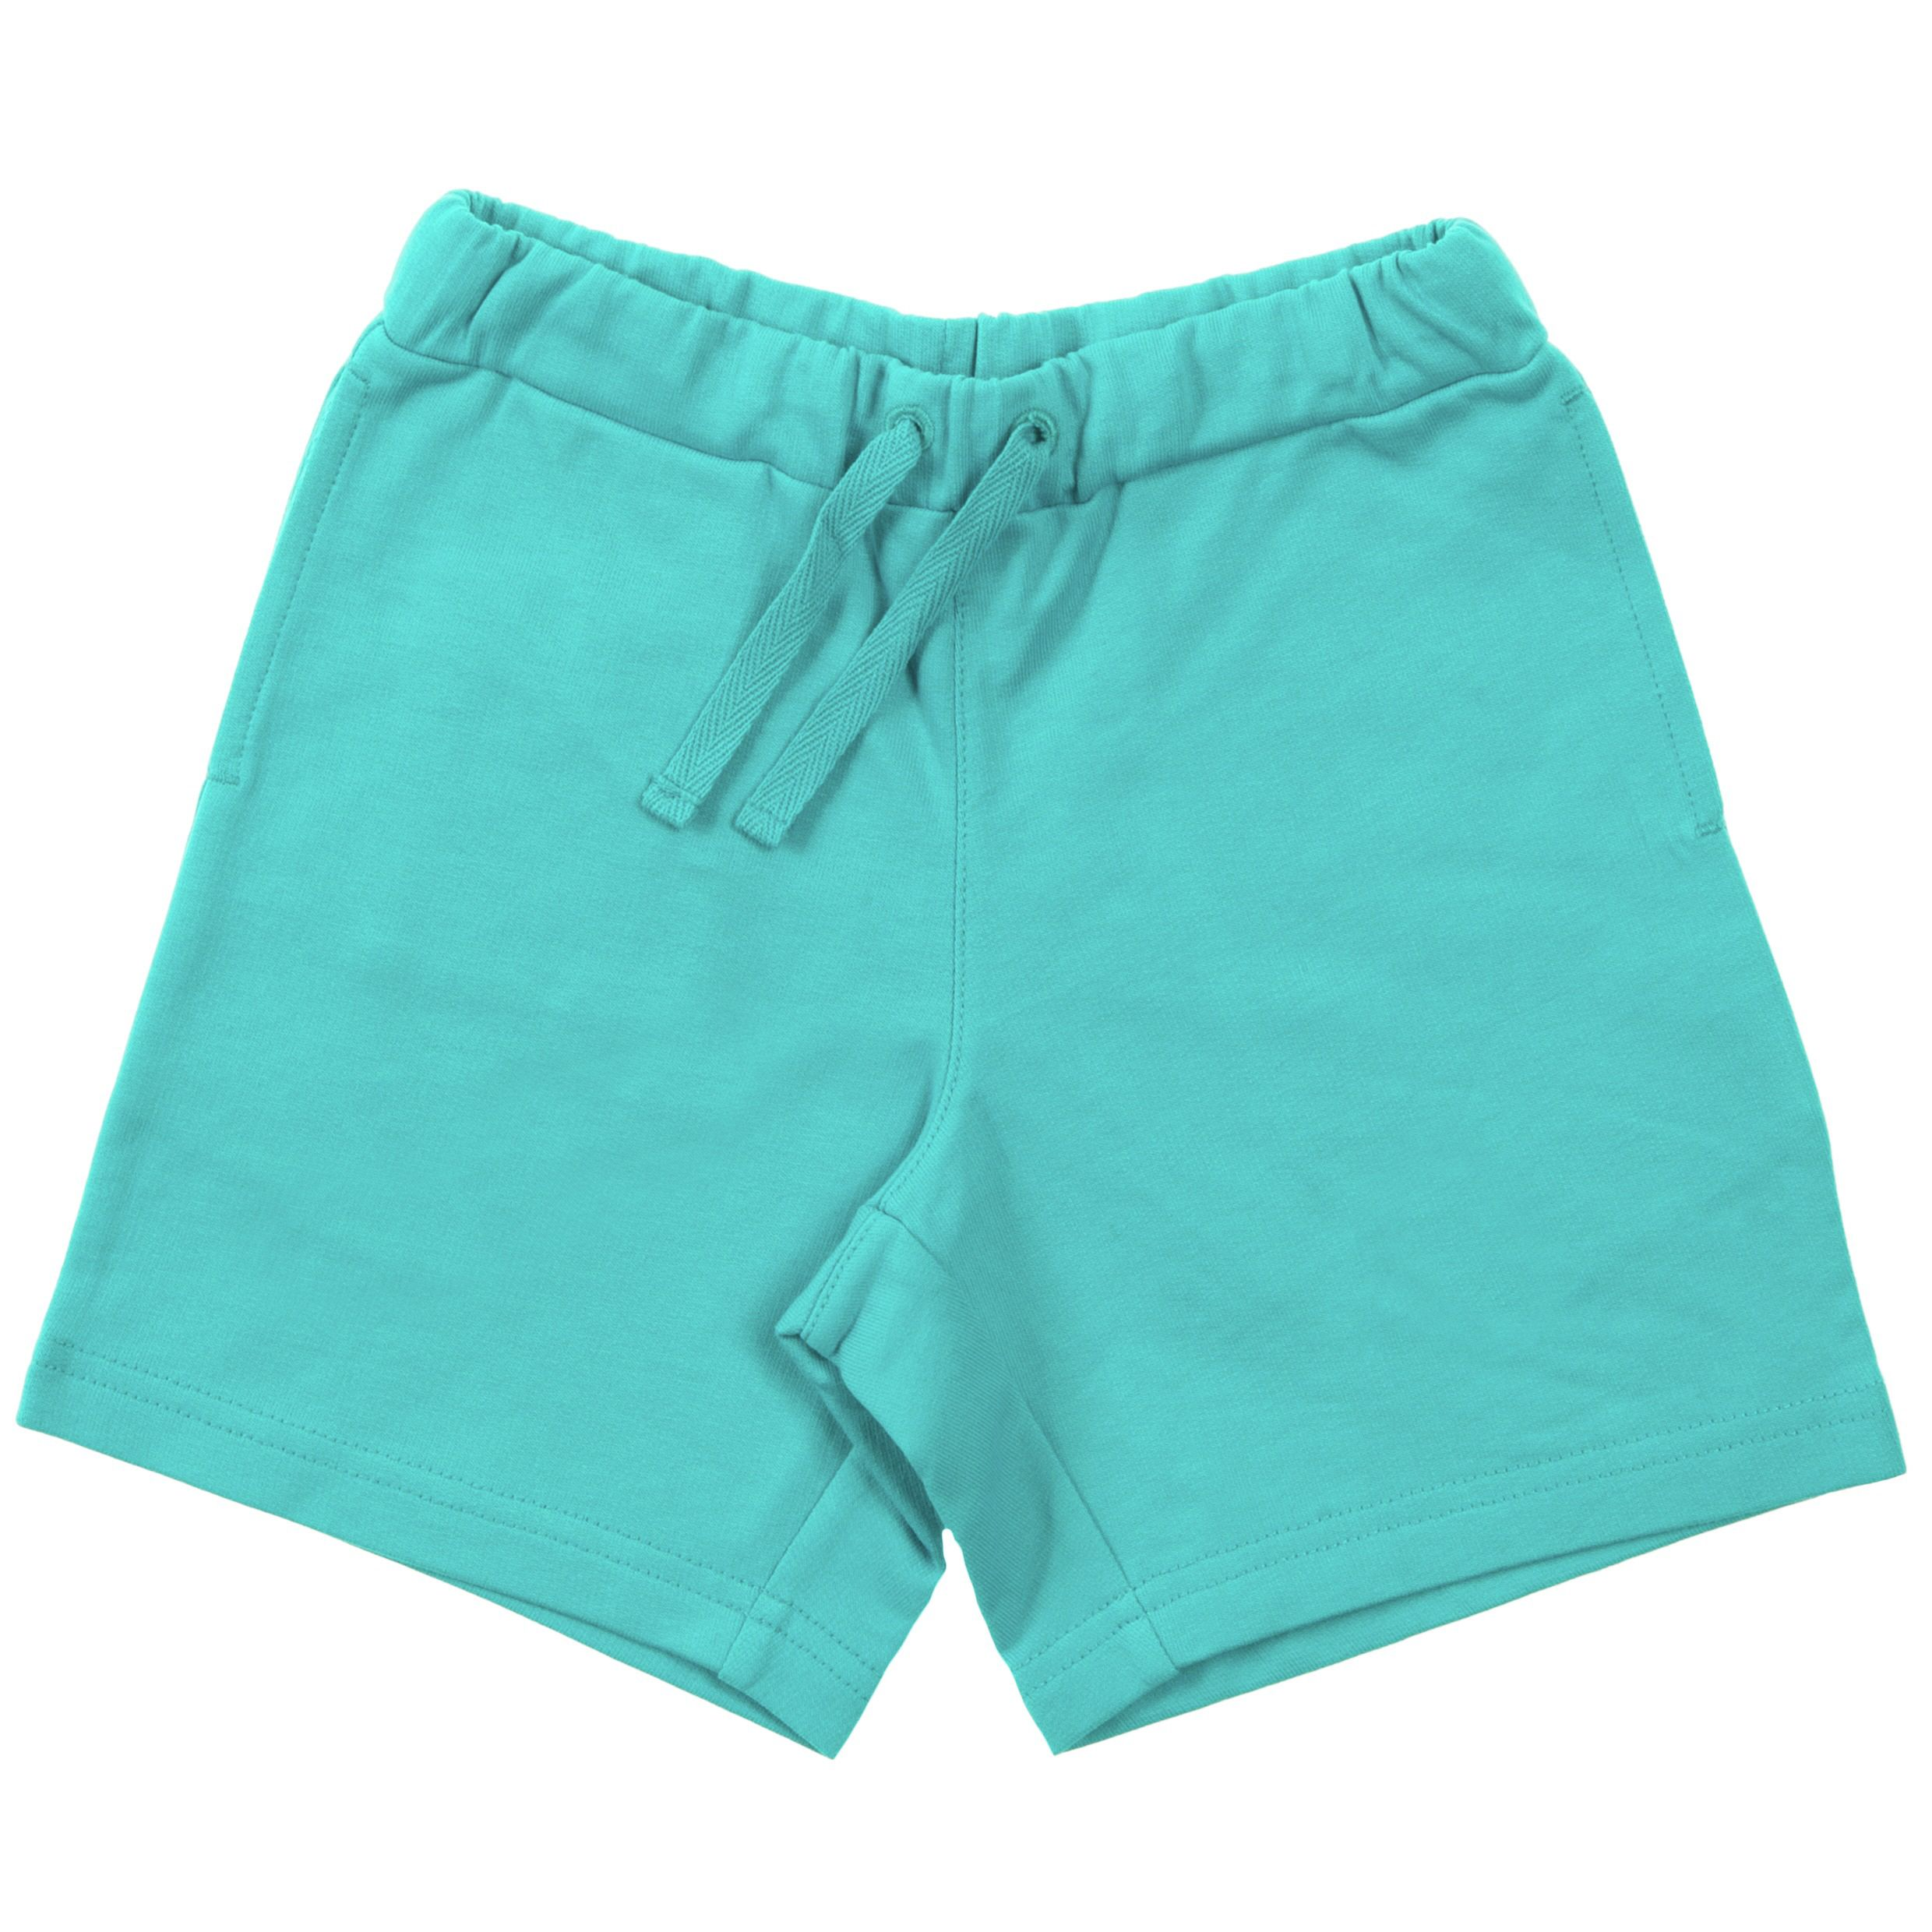 Boys soft shorts